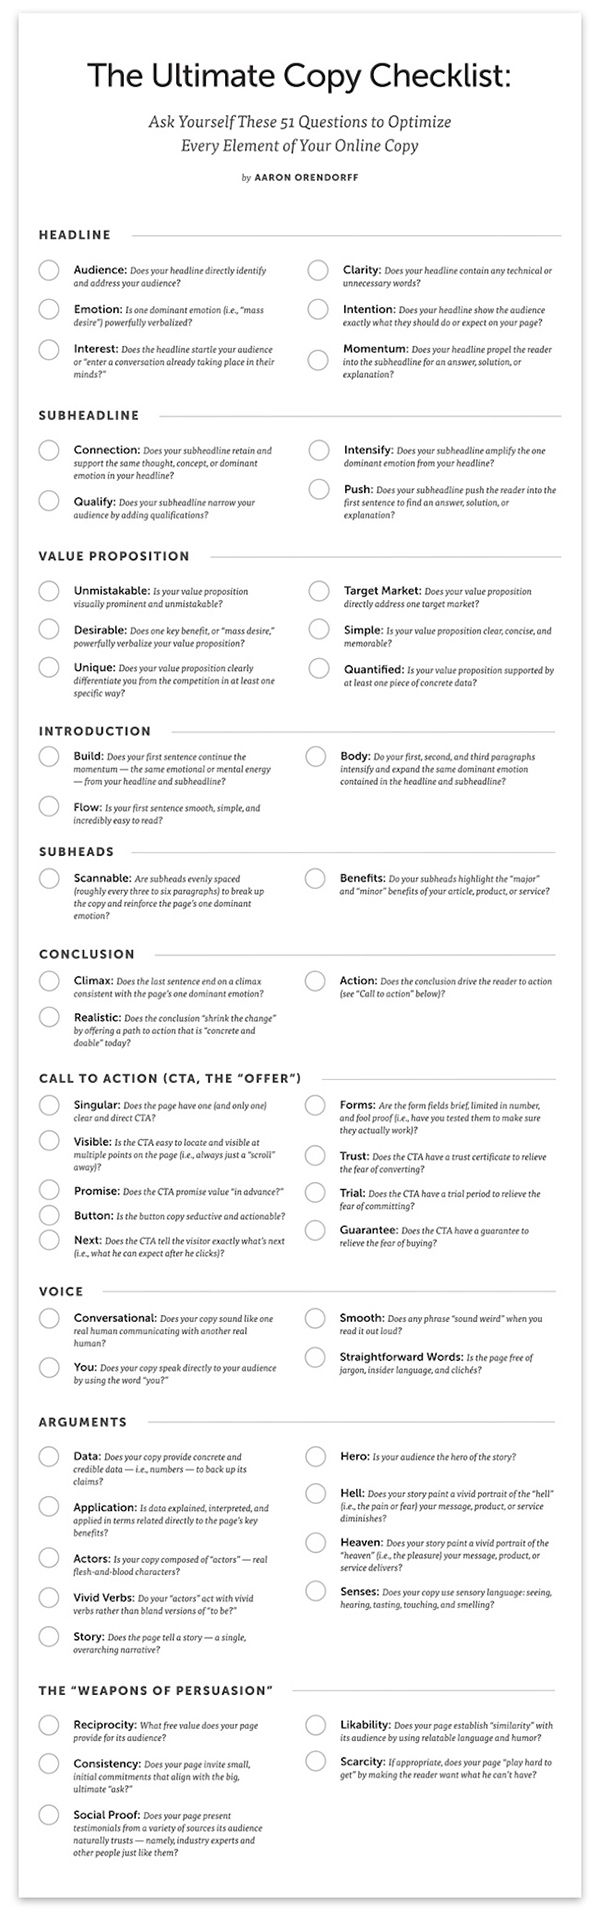 51 Questions You Must Ask Yourself Before Publishing Your Online Content #Infographic